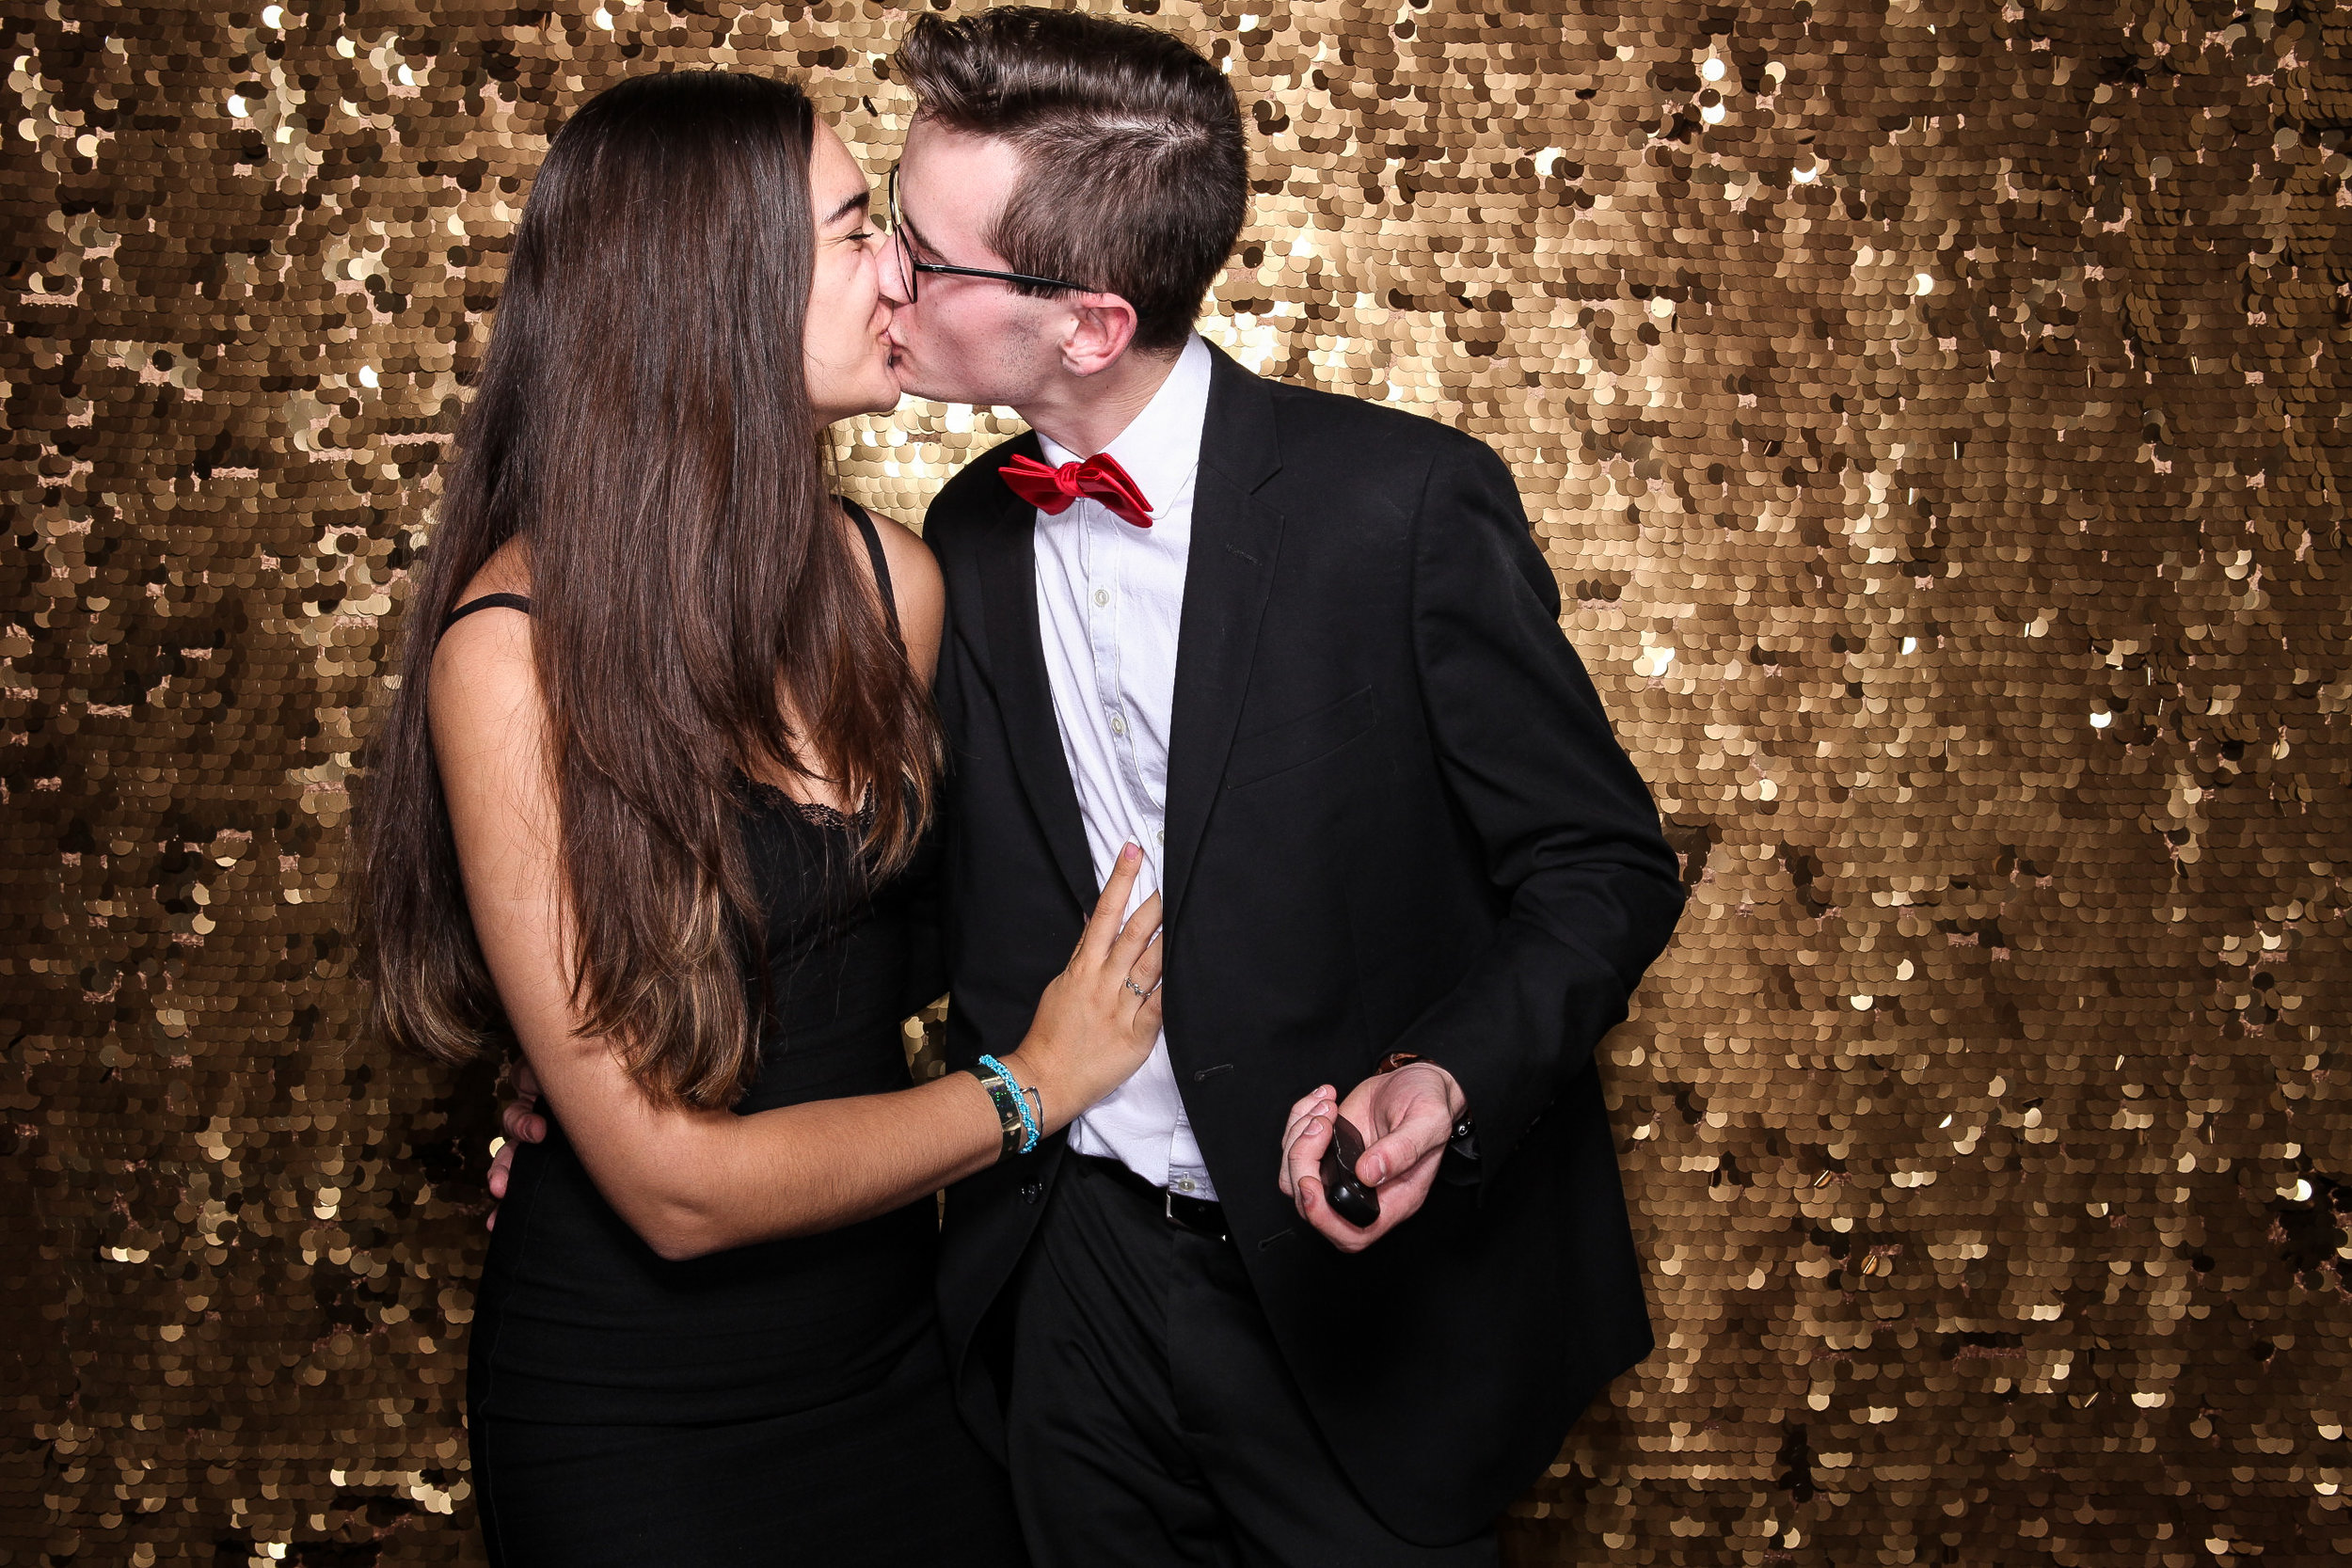 20190503_Adelphi_Senior_Formal-191.jpg